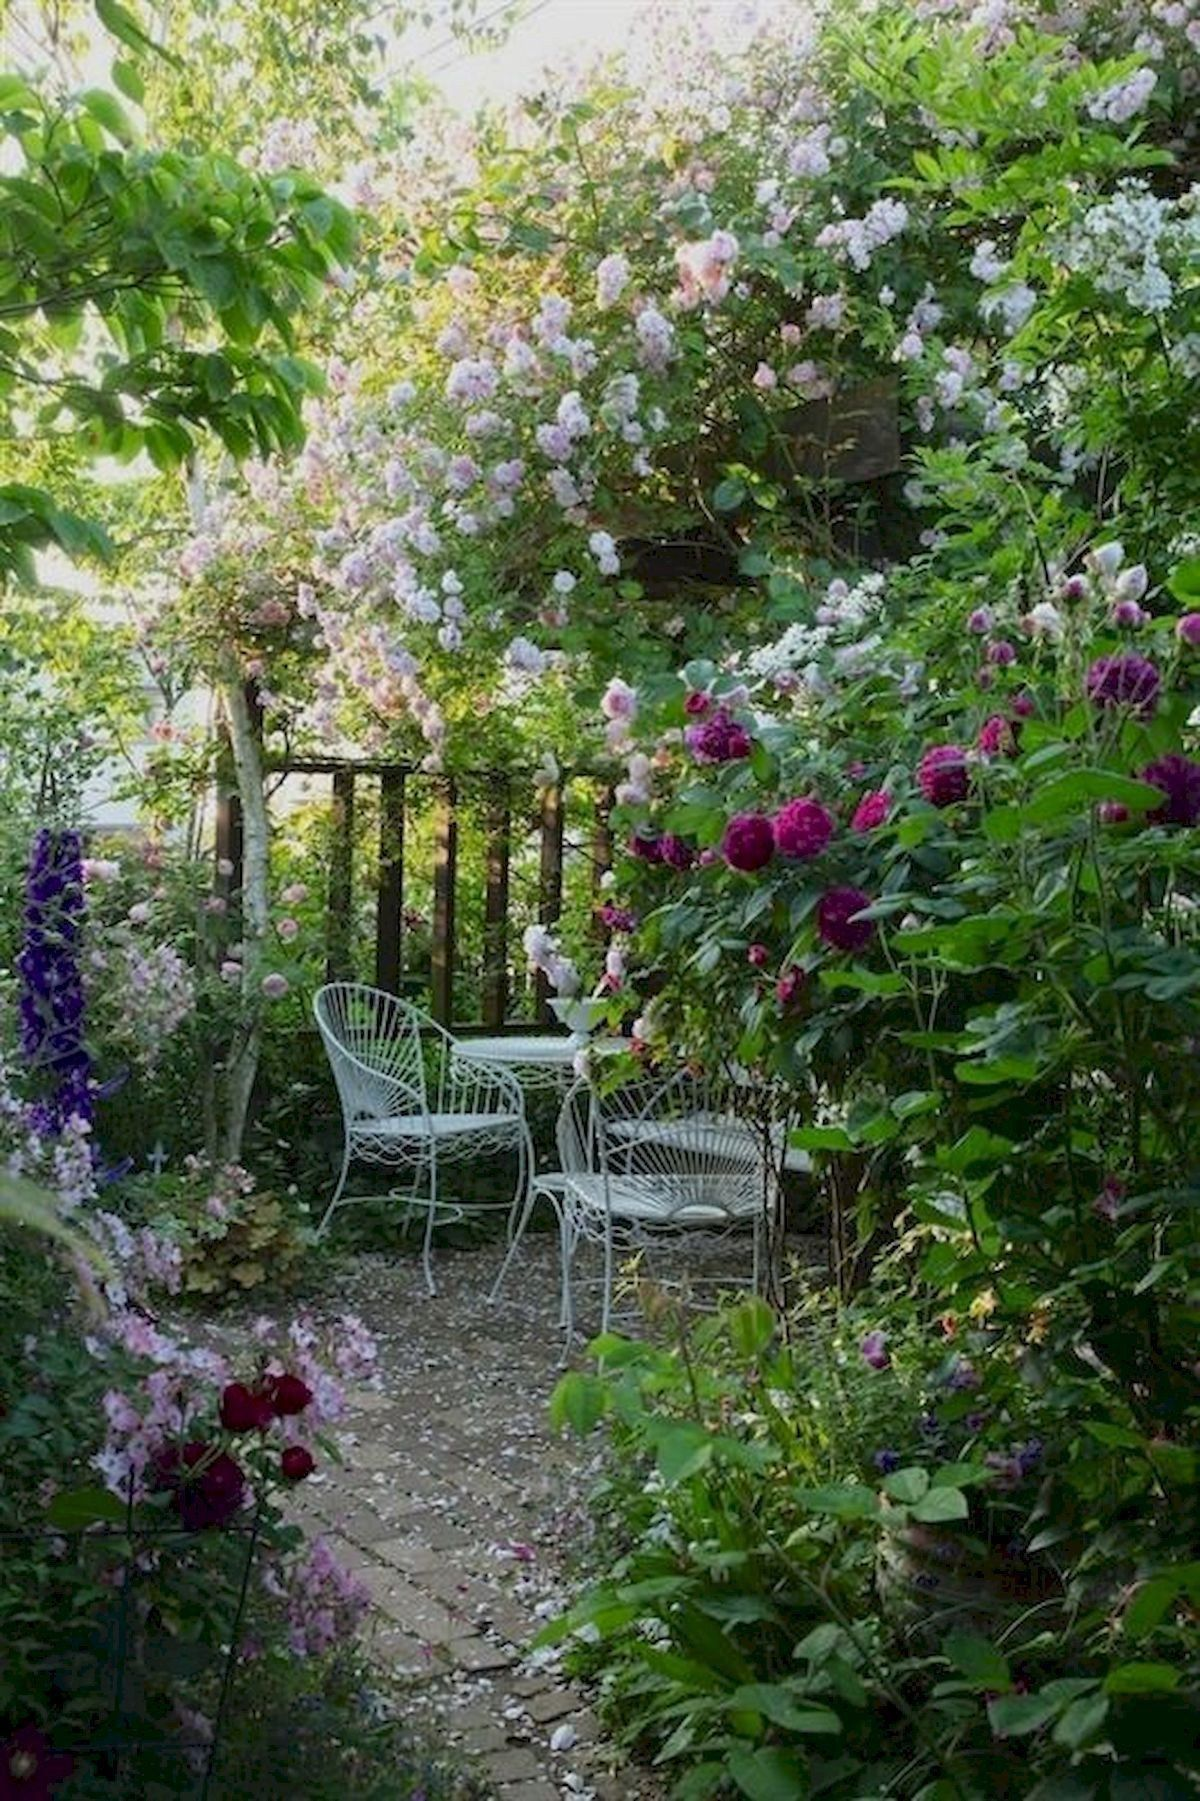 50 Best Garden Design Ideas For Making Your Page Beautiful 72 Home Decor Diy Design Beautiful Flowers Garden Flower Garden Design Amazing Gardens